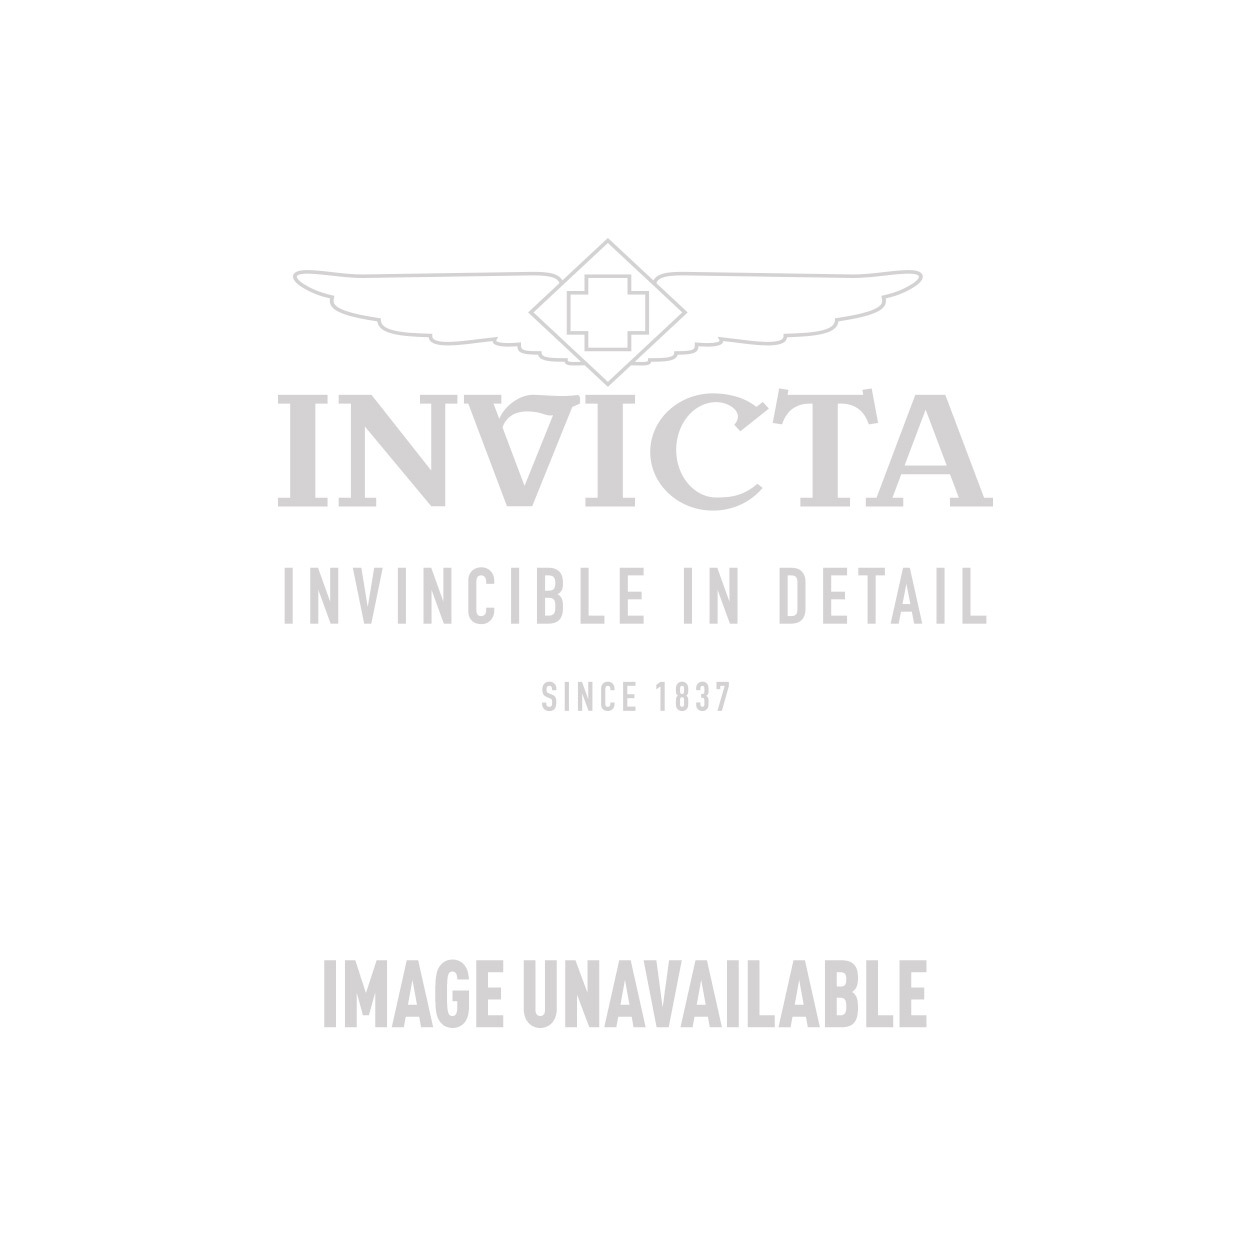 Invicta Pro Diver Quartz Watch - Stainless Steel case with Black tone Polyurethane band - Model 15394